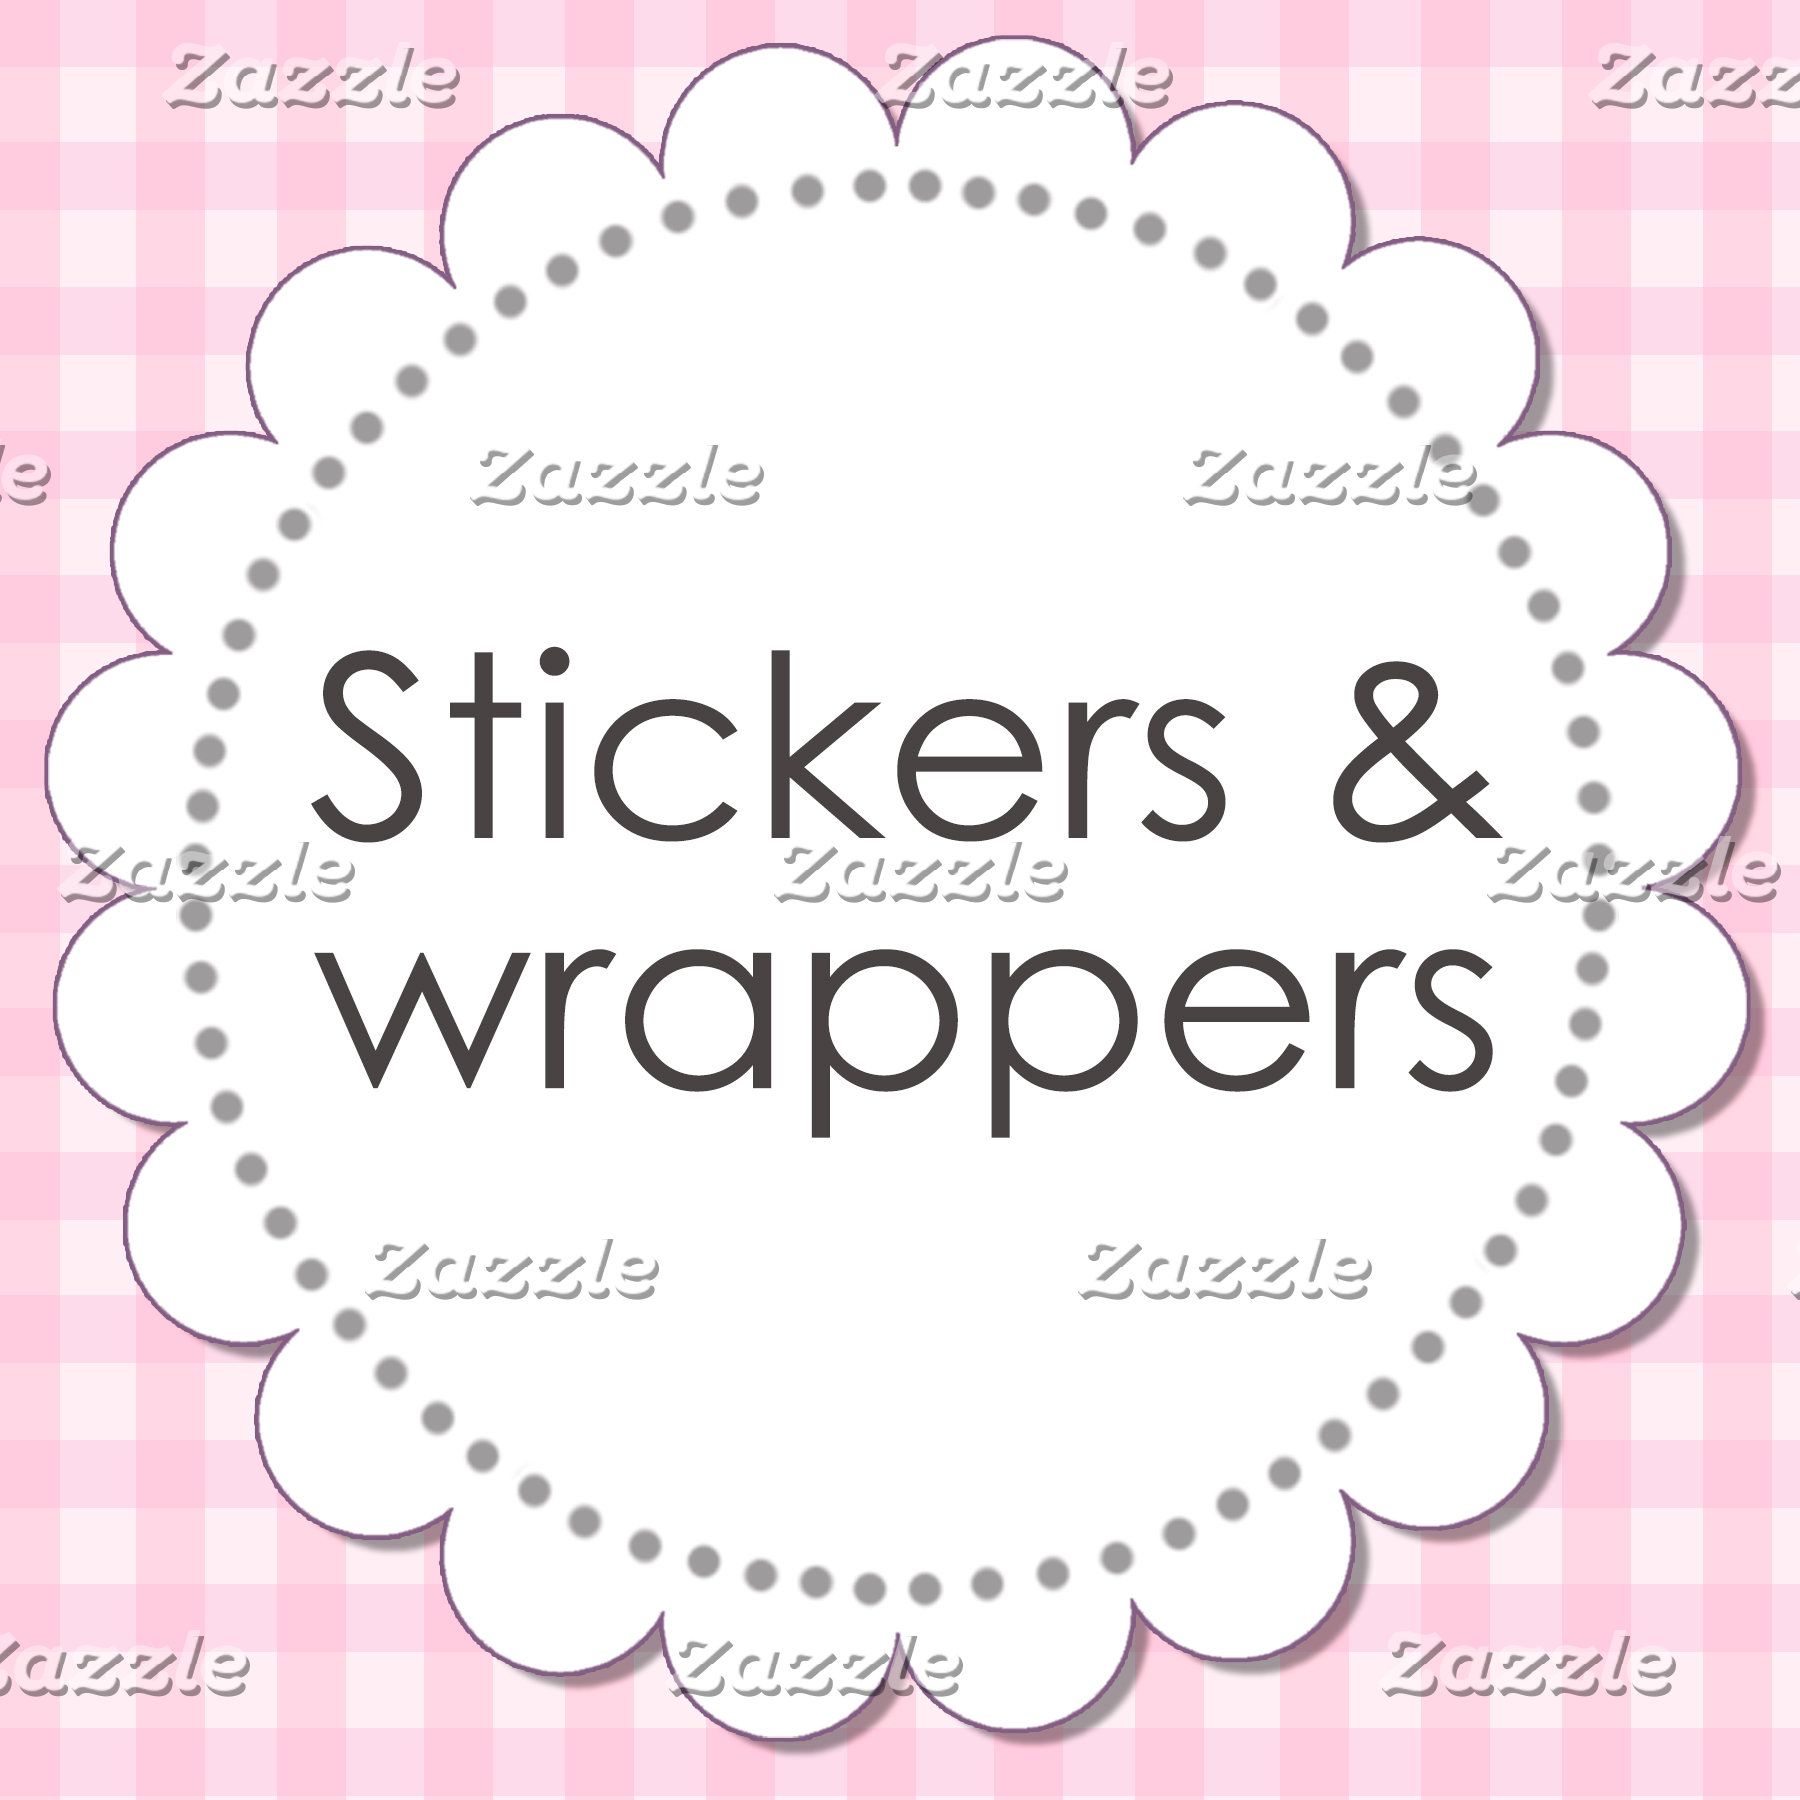 Stickers and Wrappers